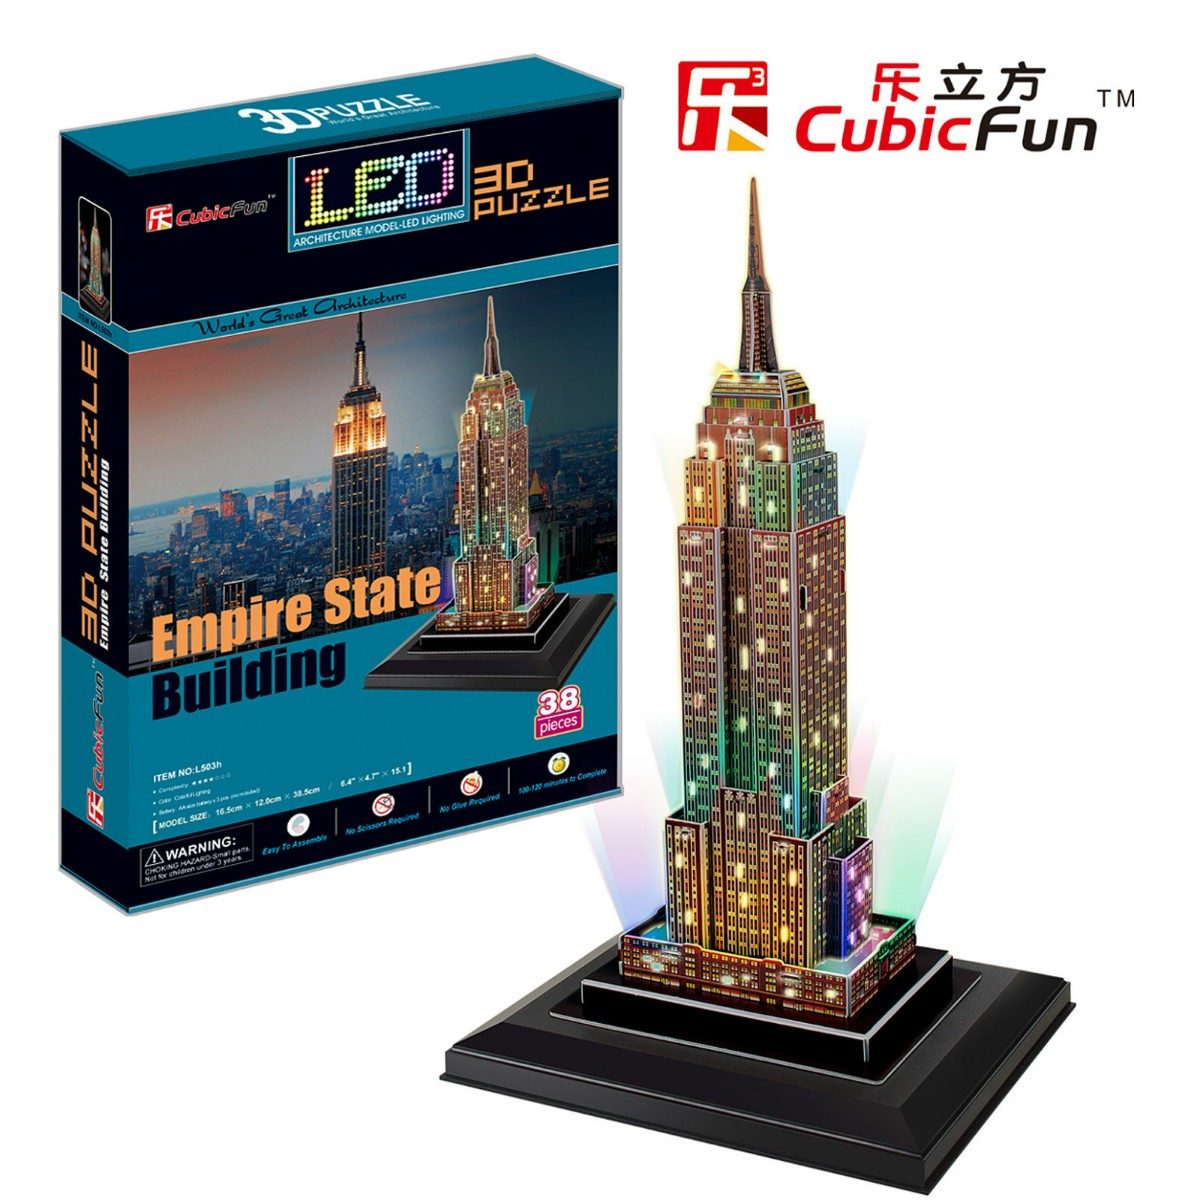 puzzle 3d mit led empire state building 38 teile cubic fun puzzle online kaufen. Black Bedroom Furniture Sets. Home Design Ideas